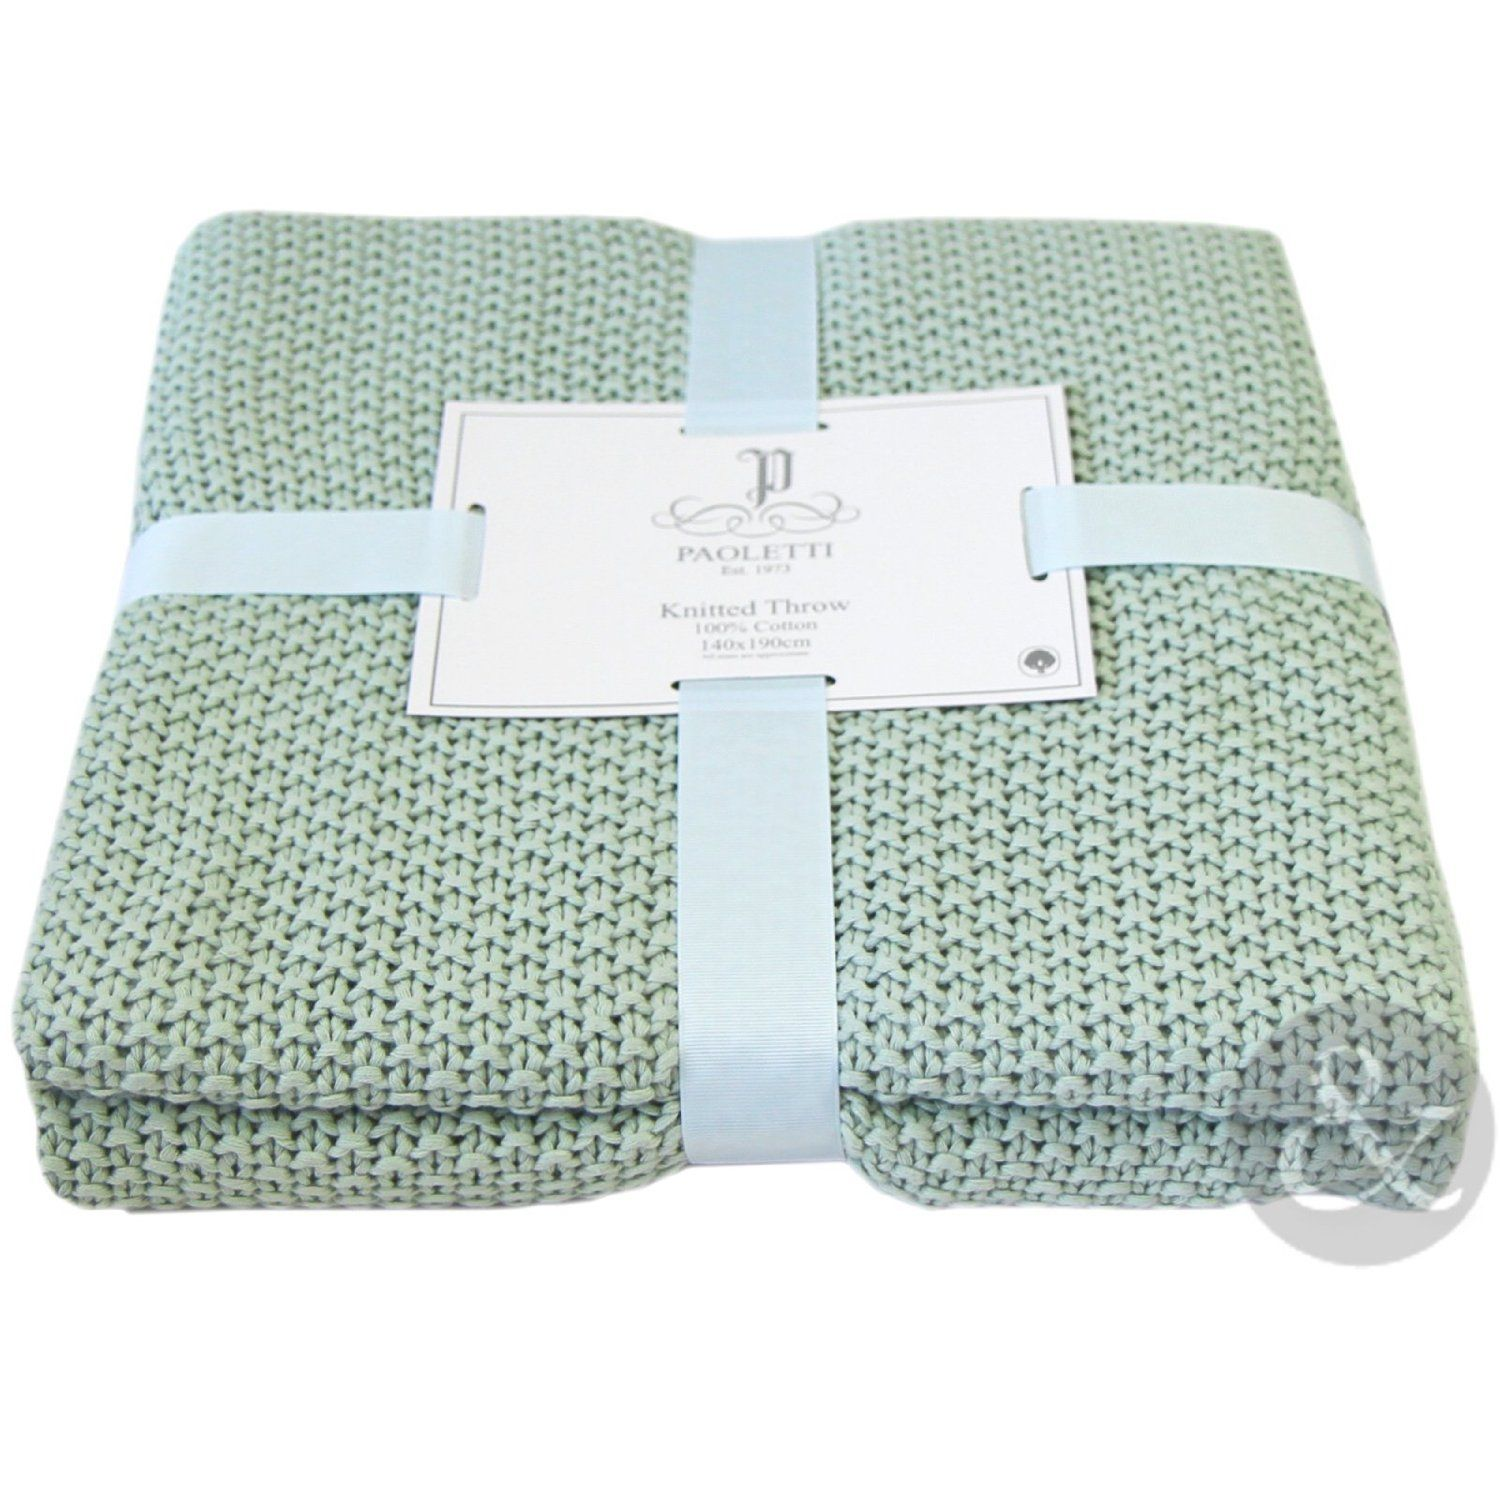 Sofa Throws Uk Only Bed For Small Apartment 100 Cotton Knitted Throw Over Luxury Soft Blanket